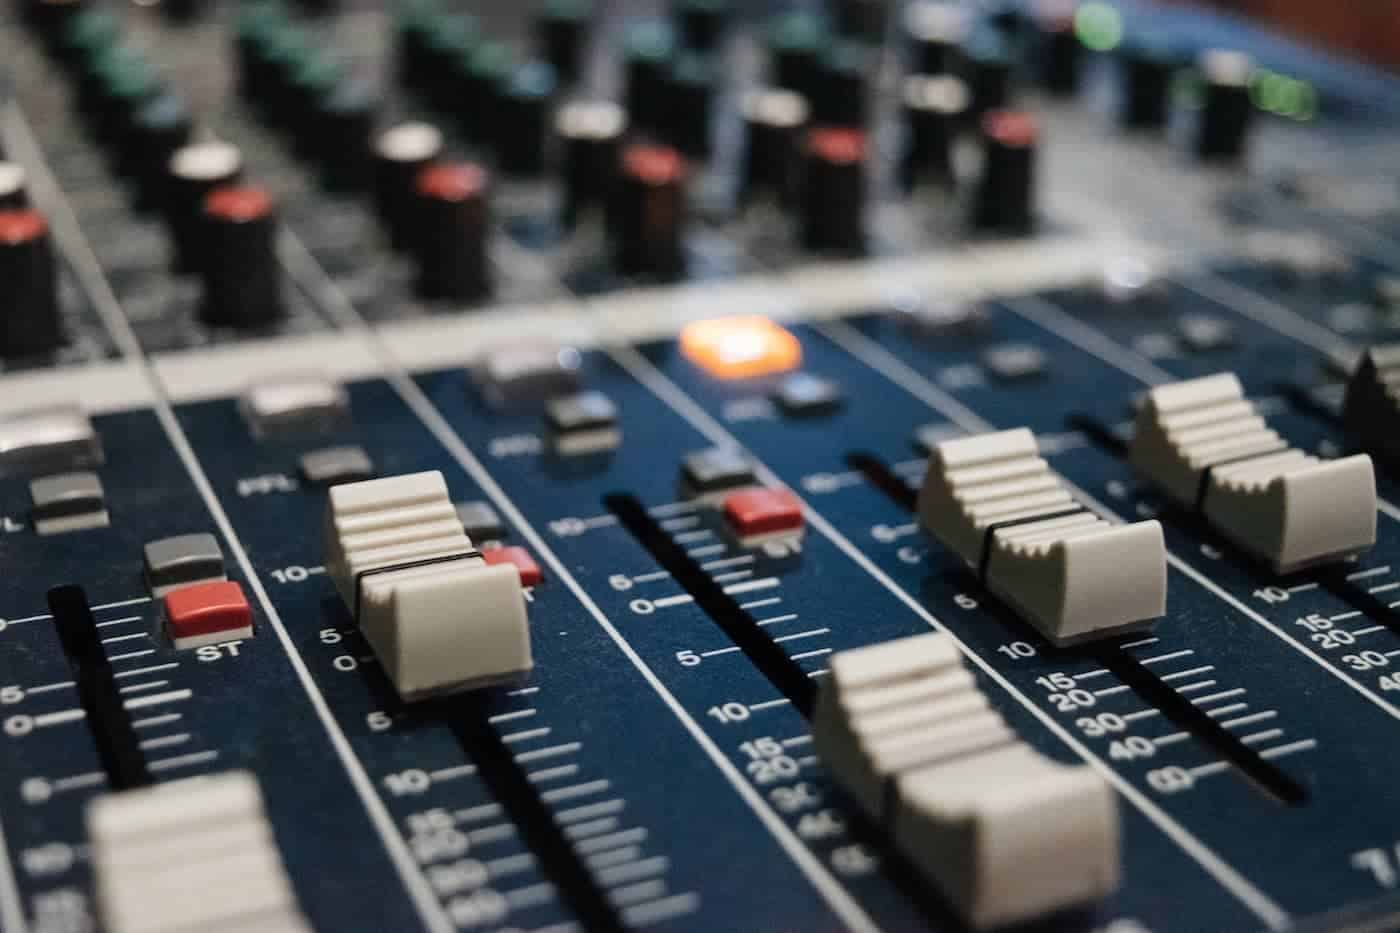 21 Royalty Free Music Resources | Inspirationfeed